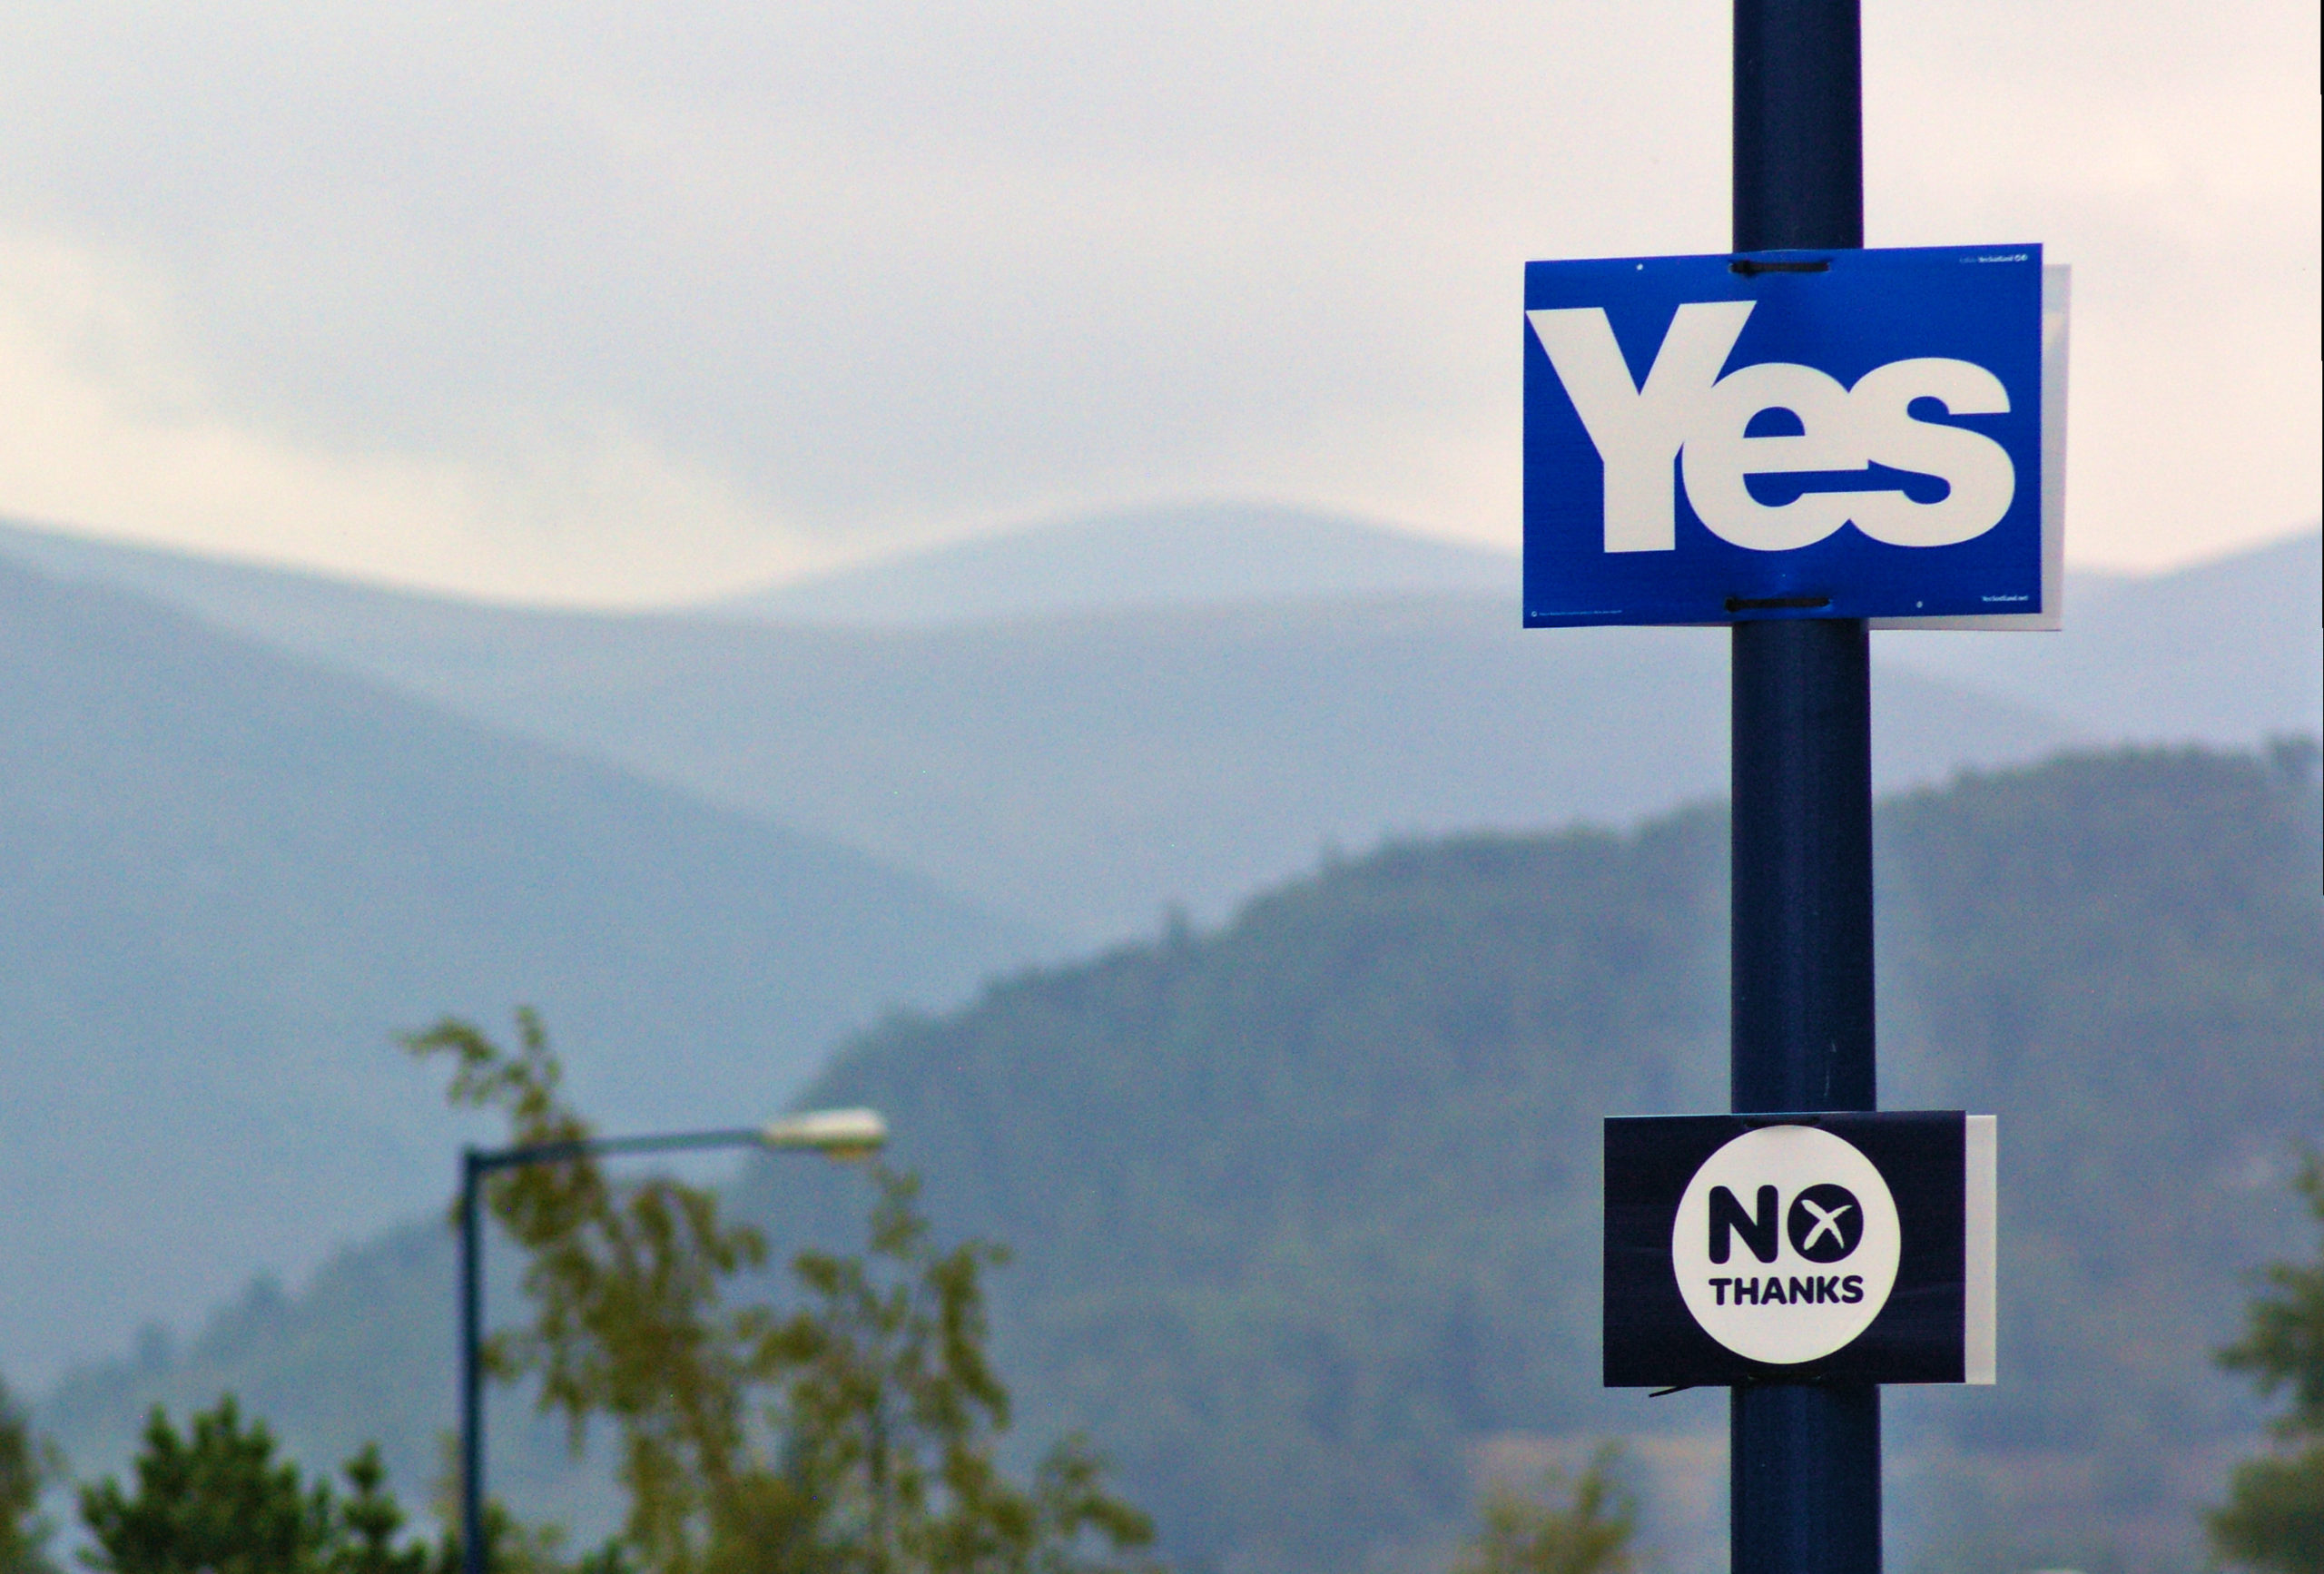 Should Scotland become an independent country?